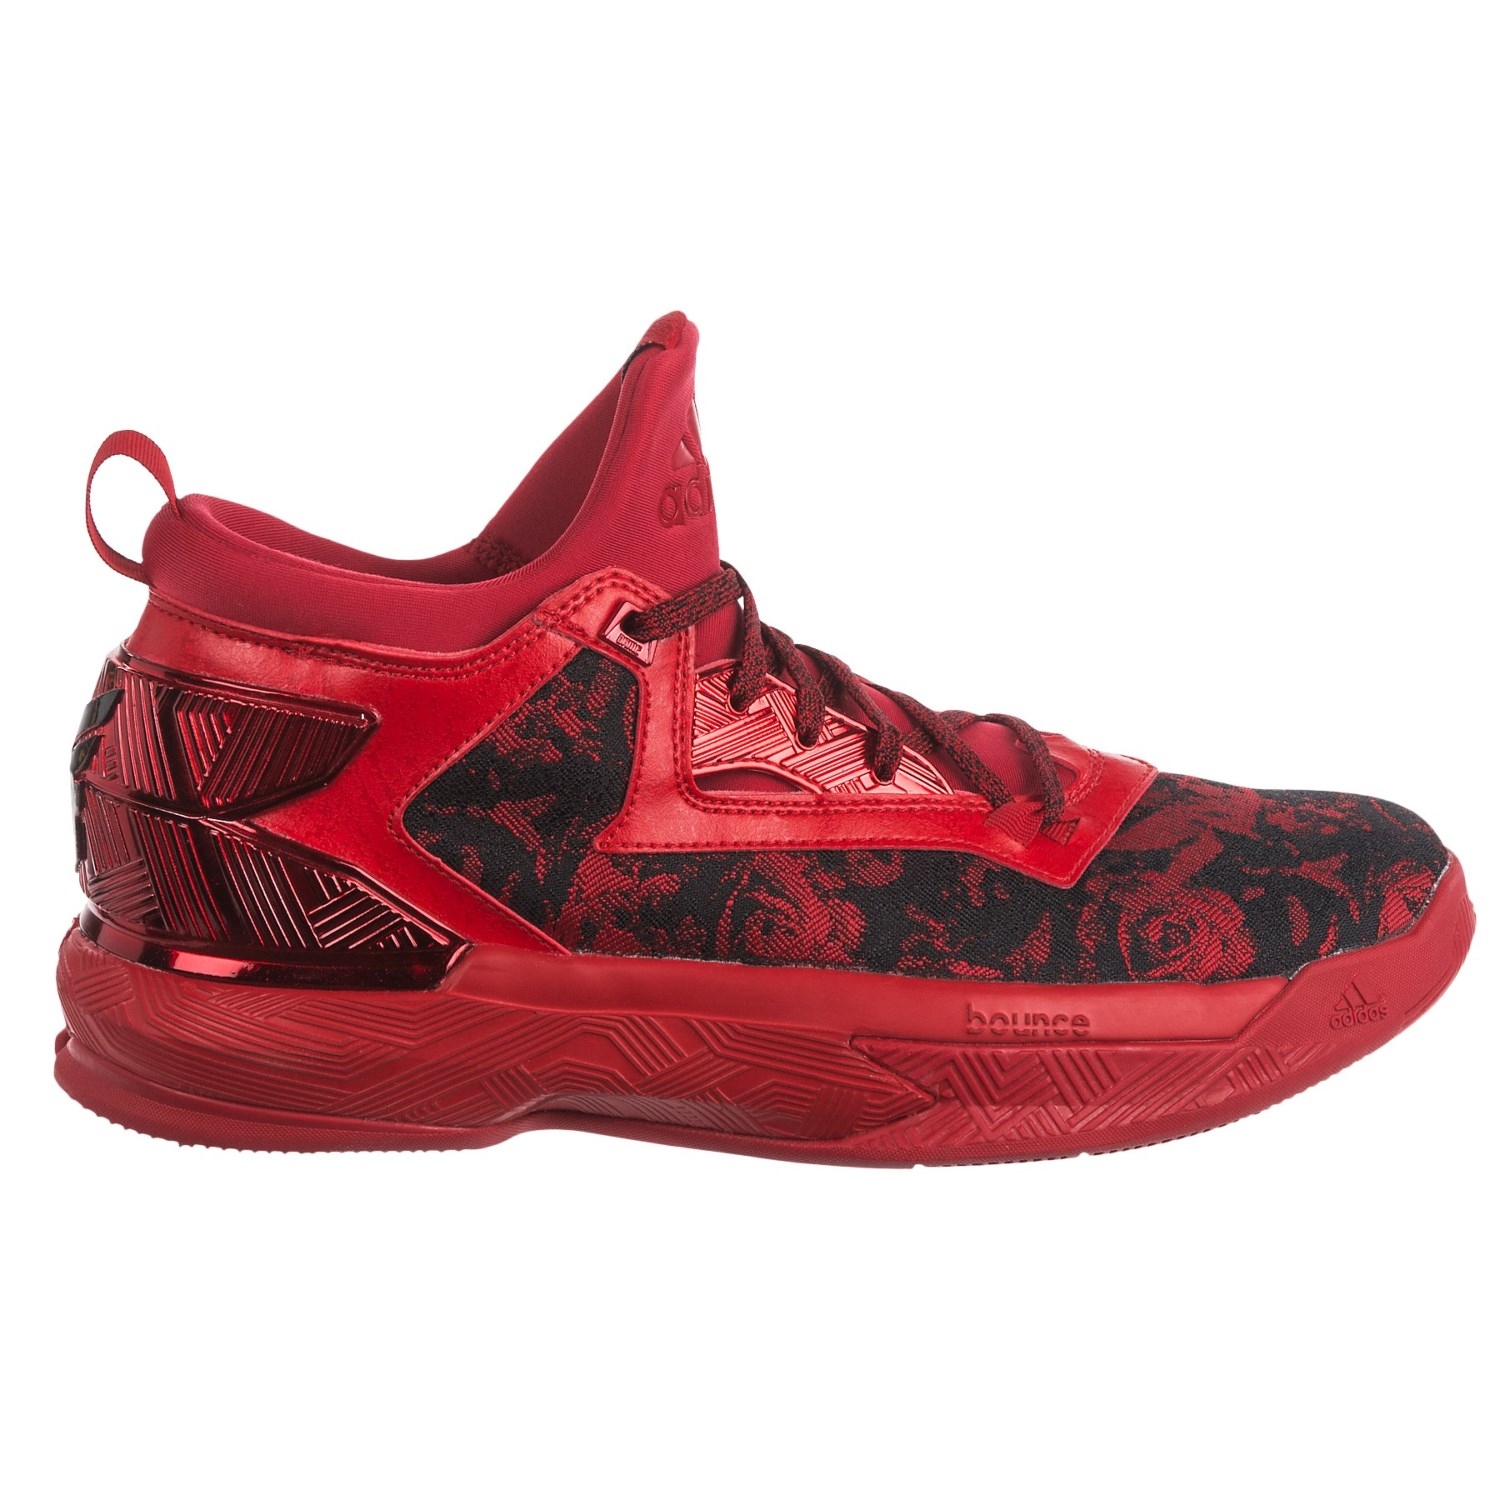 adidas basketball shoes. adidas damian lillard 2 basketball shoes (for men)